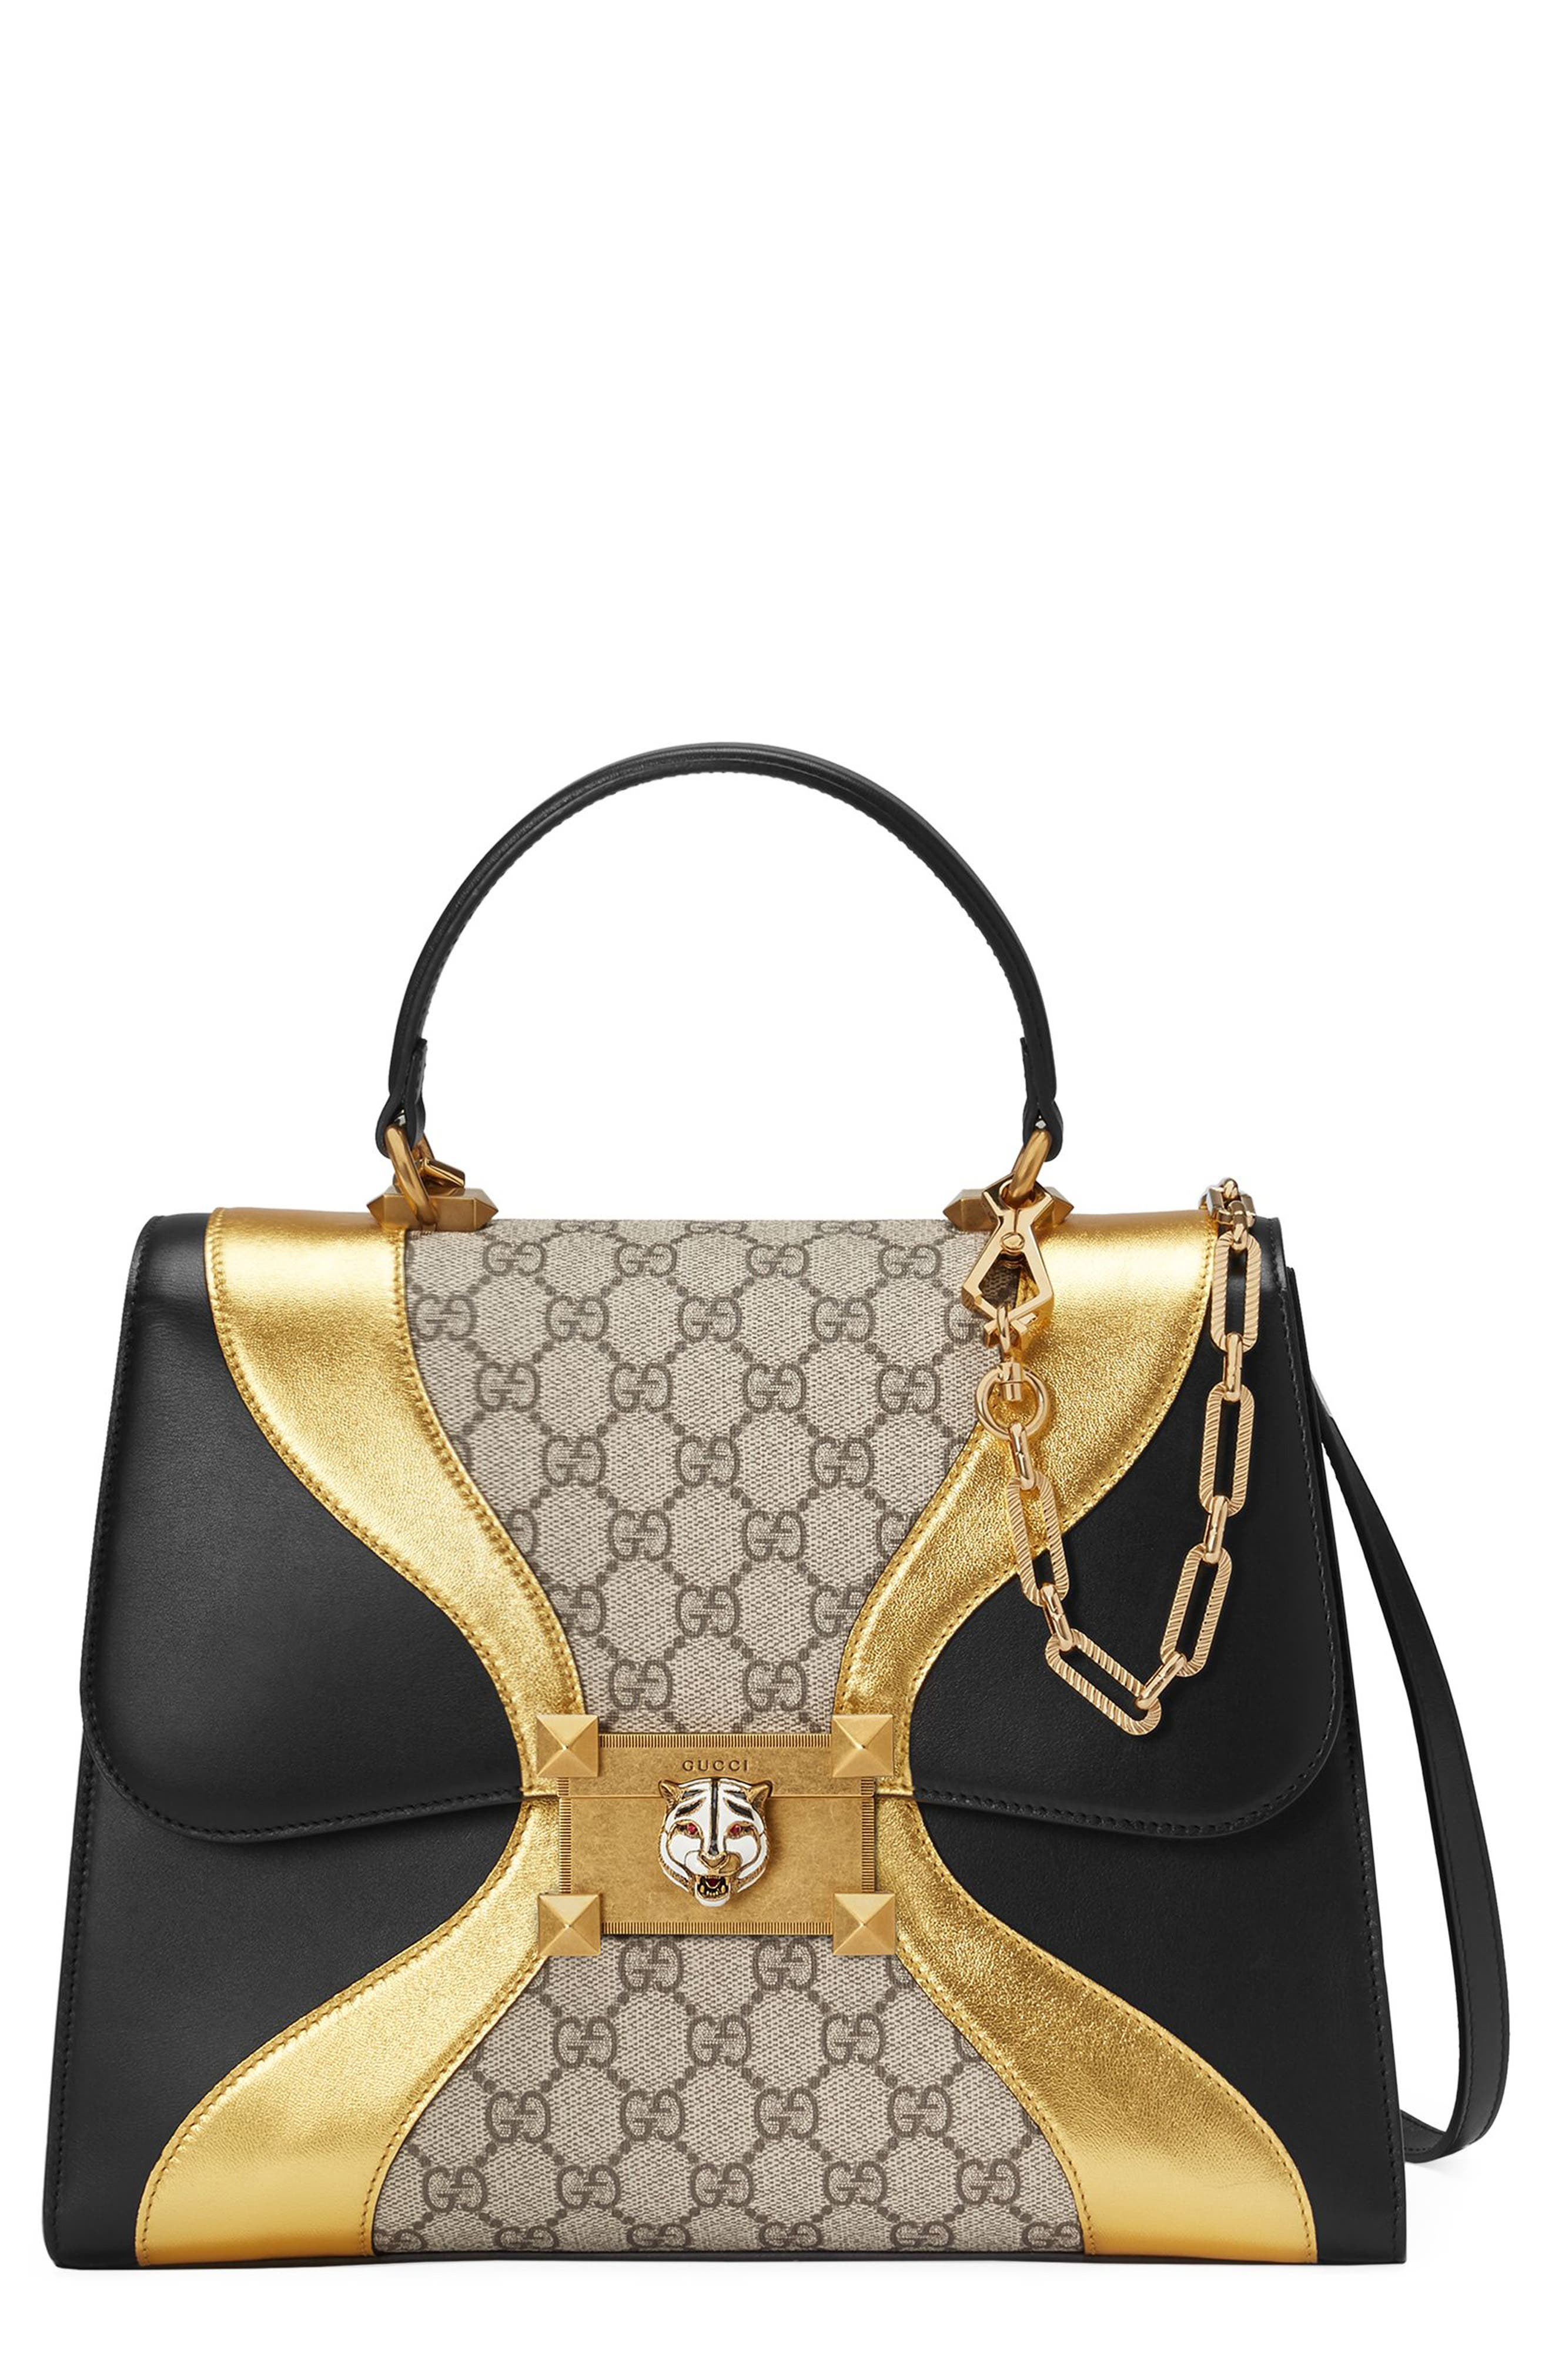 GUCCI Top Handle GG Supreme & Leather Satchel